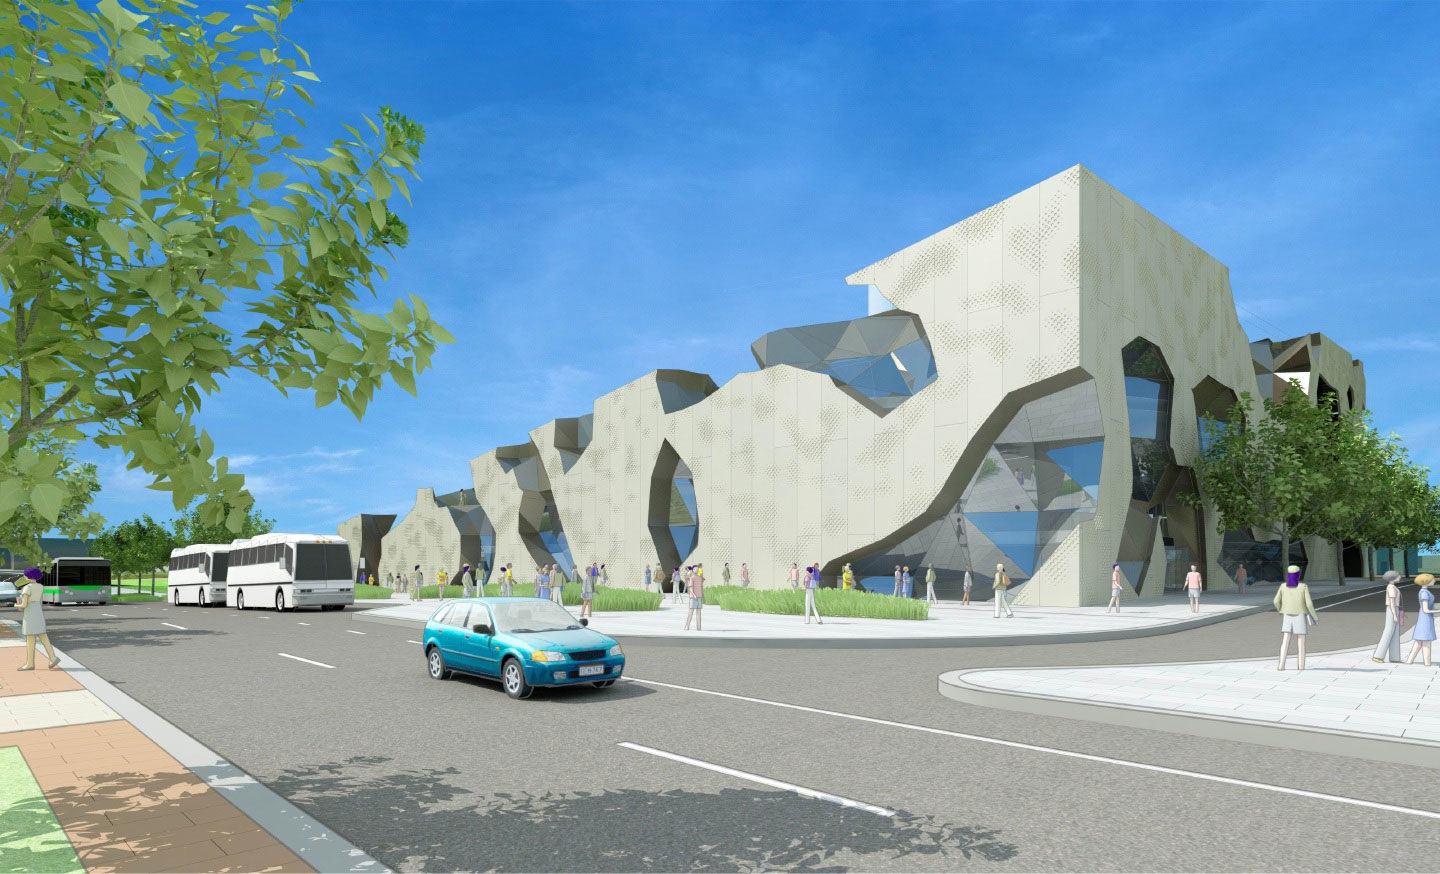 Huge debt to build the Joondalup Arts centre.